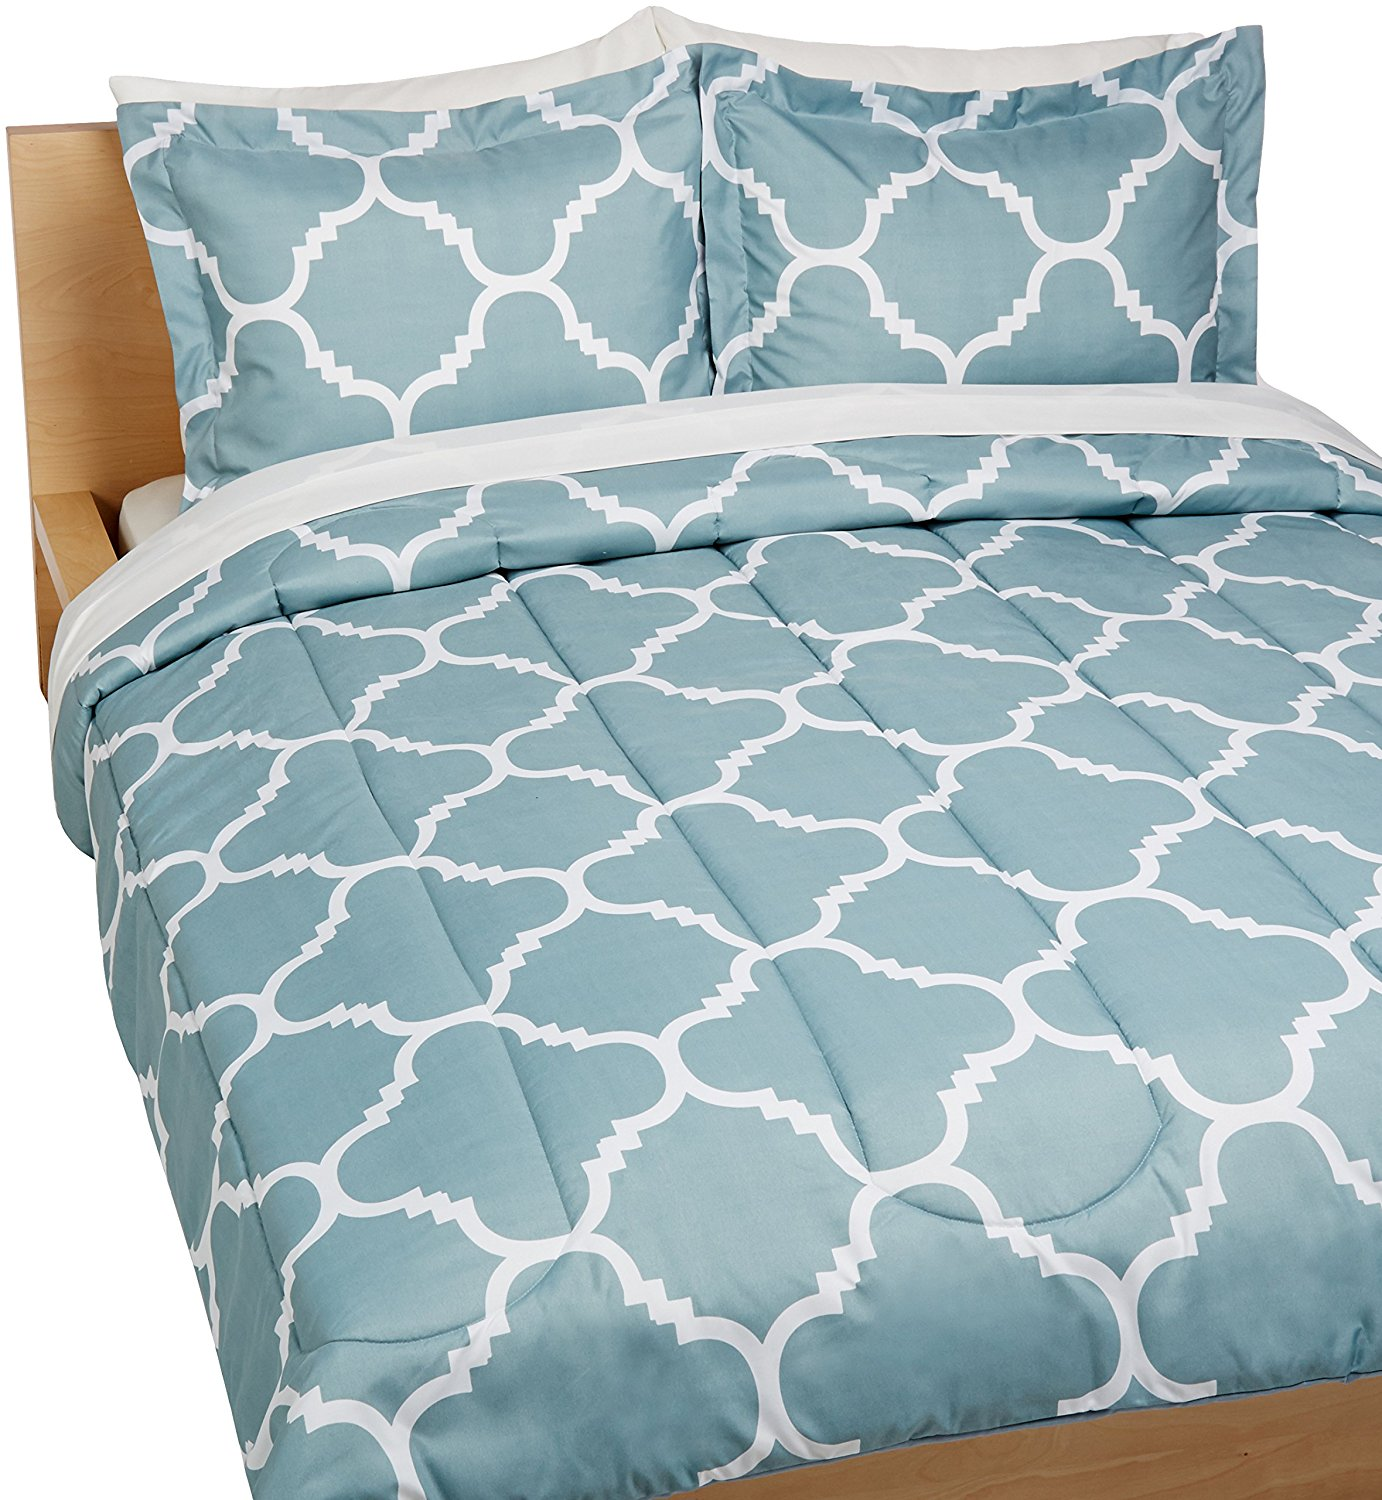 AmazonBasics 7 Piece Bed In A Bag - Full Queen, Dusty Blue Trellis